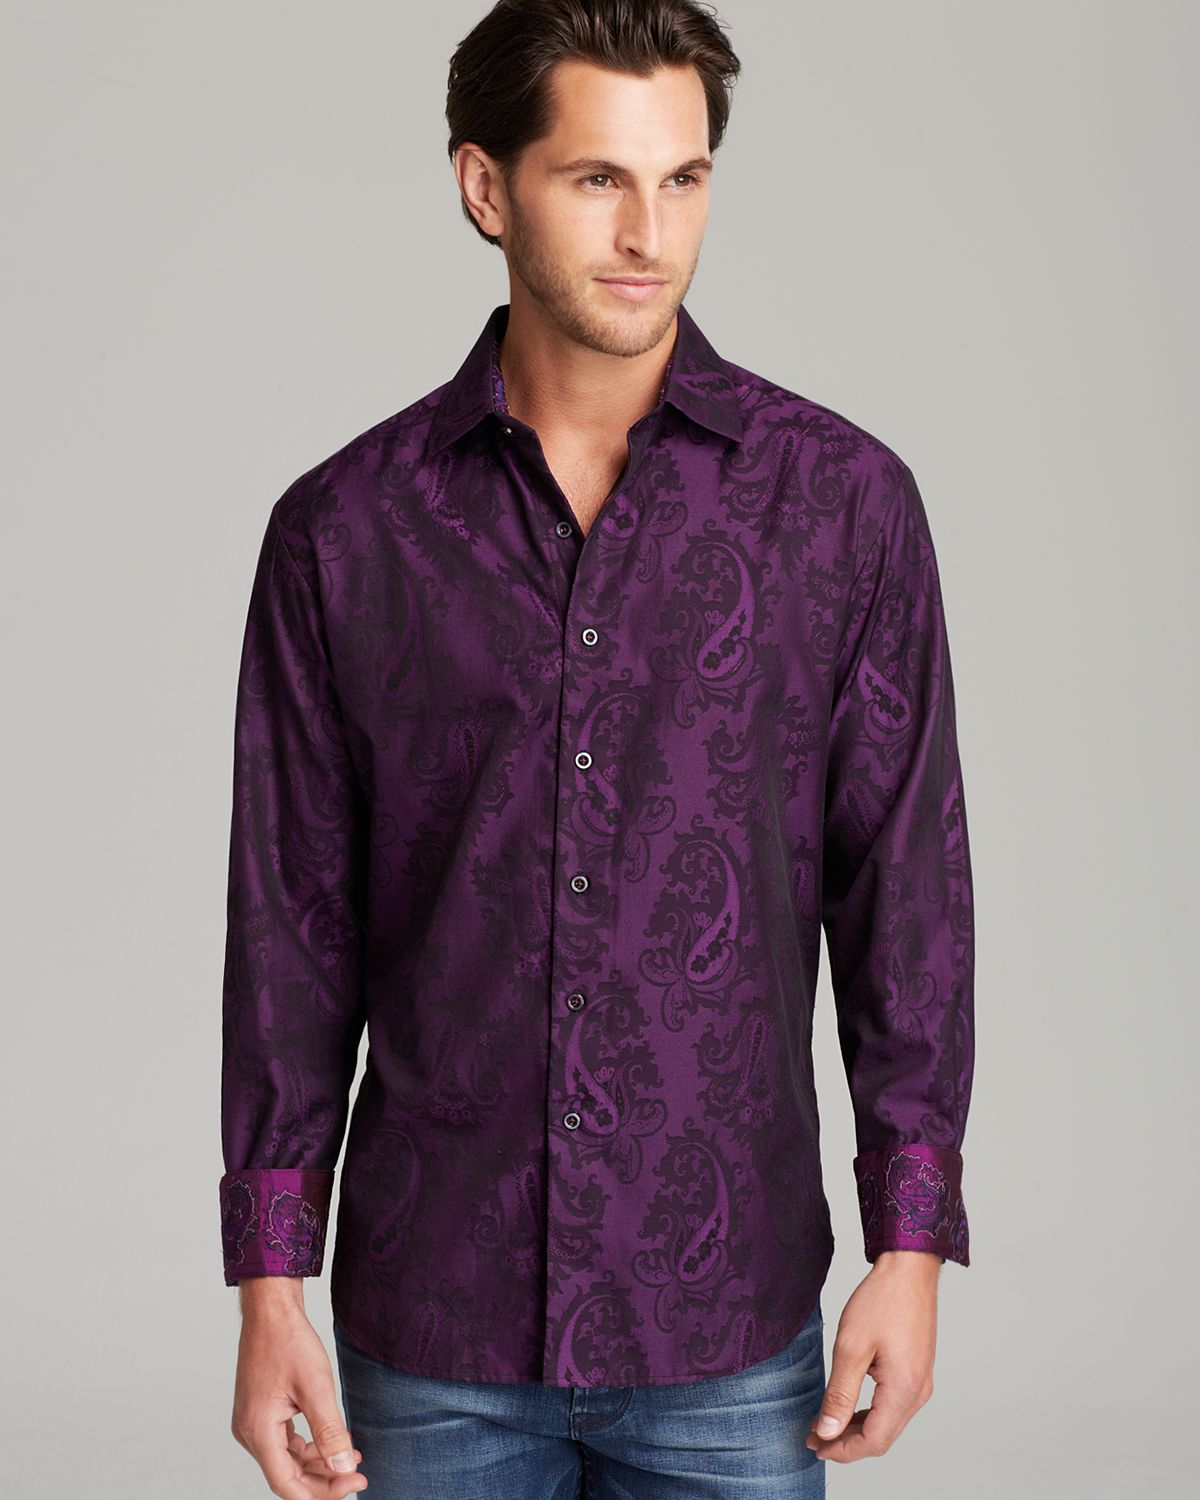 Robert graham copperhead jacquard paisley sport shirt for Where are robert graham shirts made